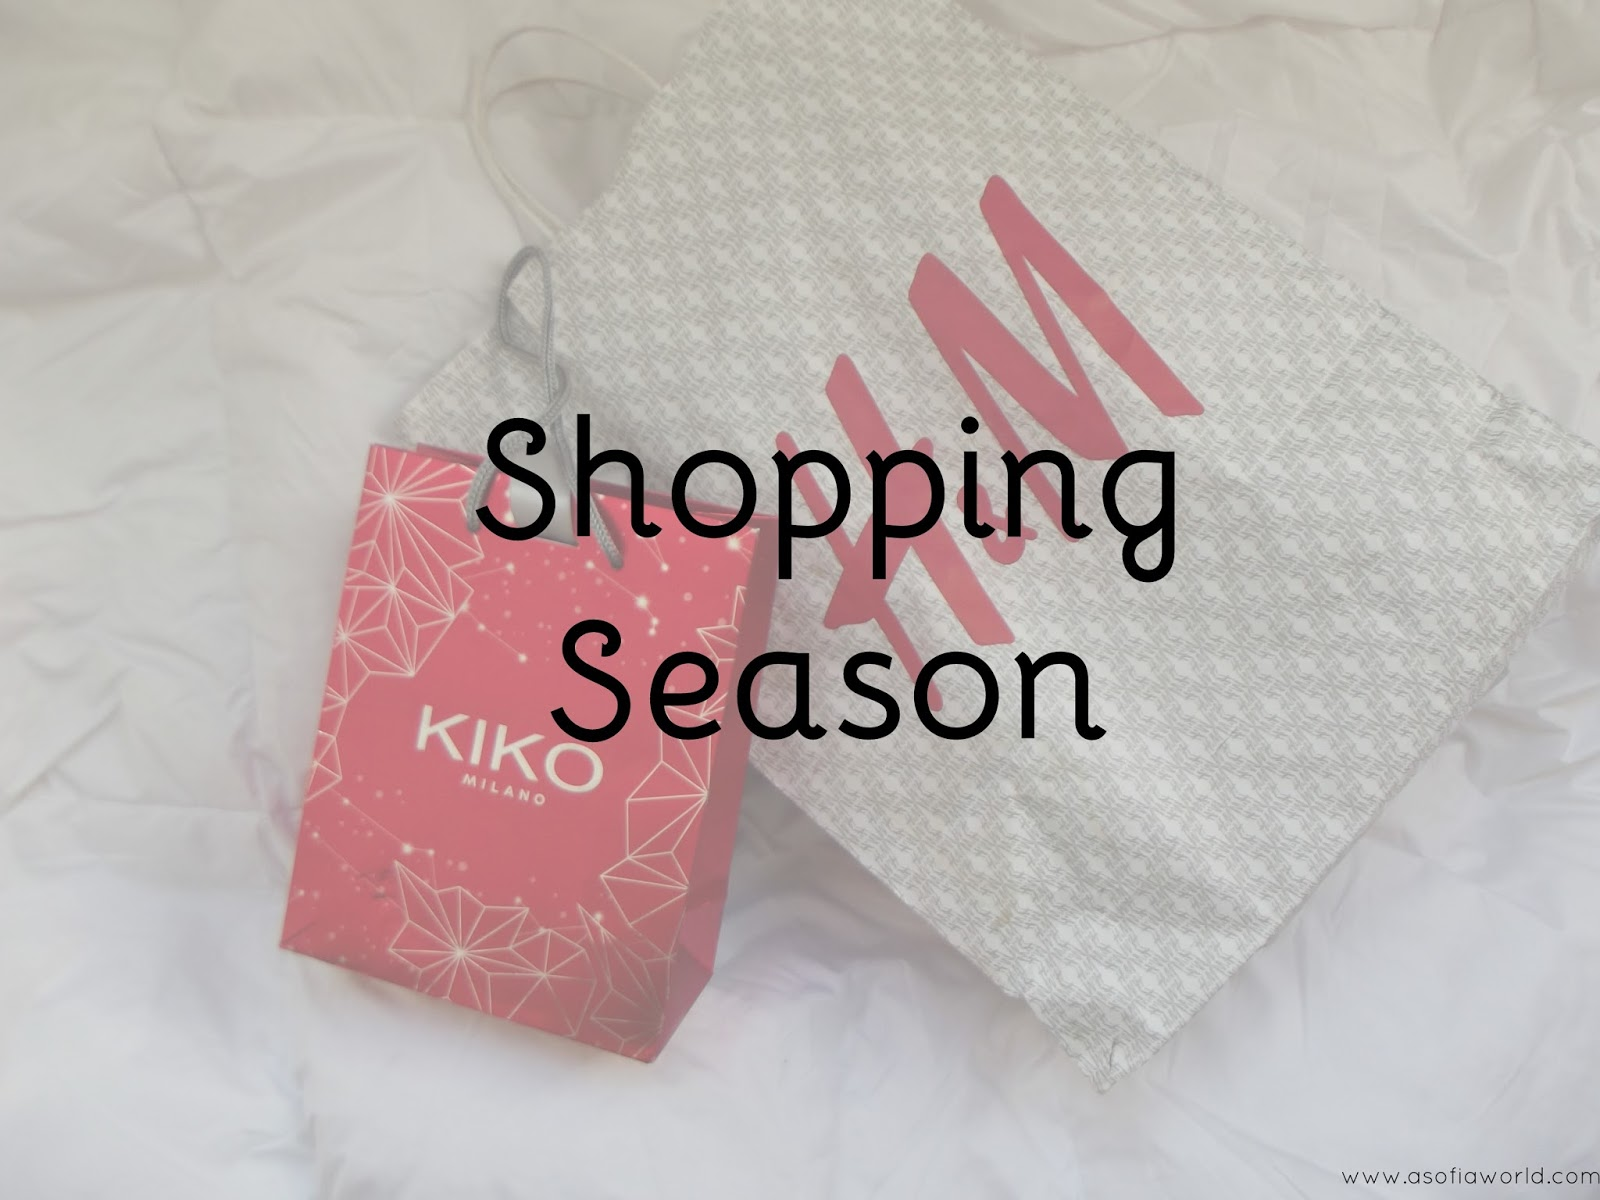 Shopping season chegou, viu, gastou.